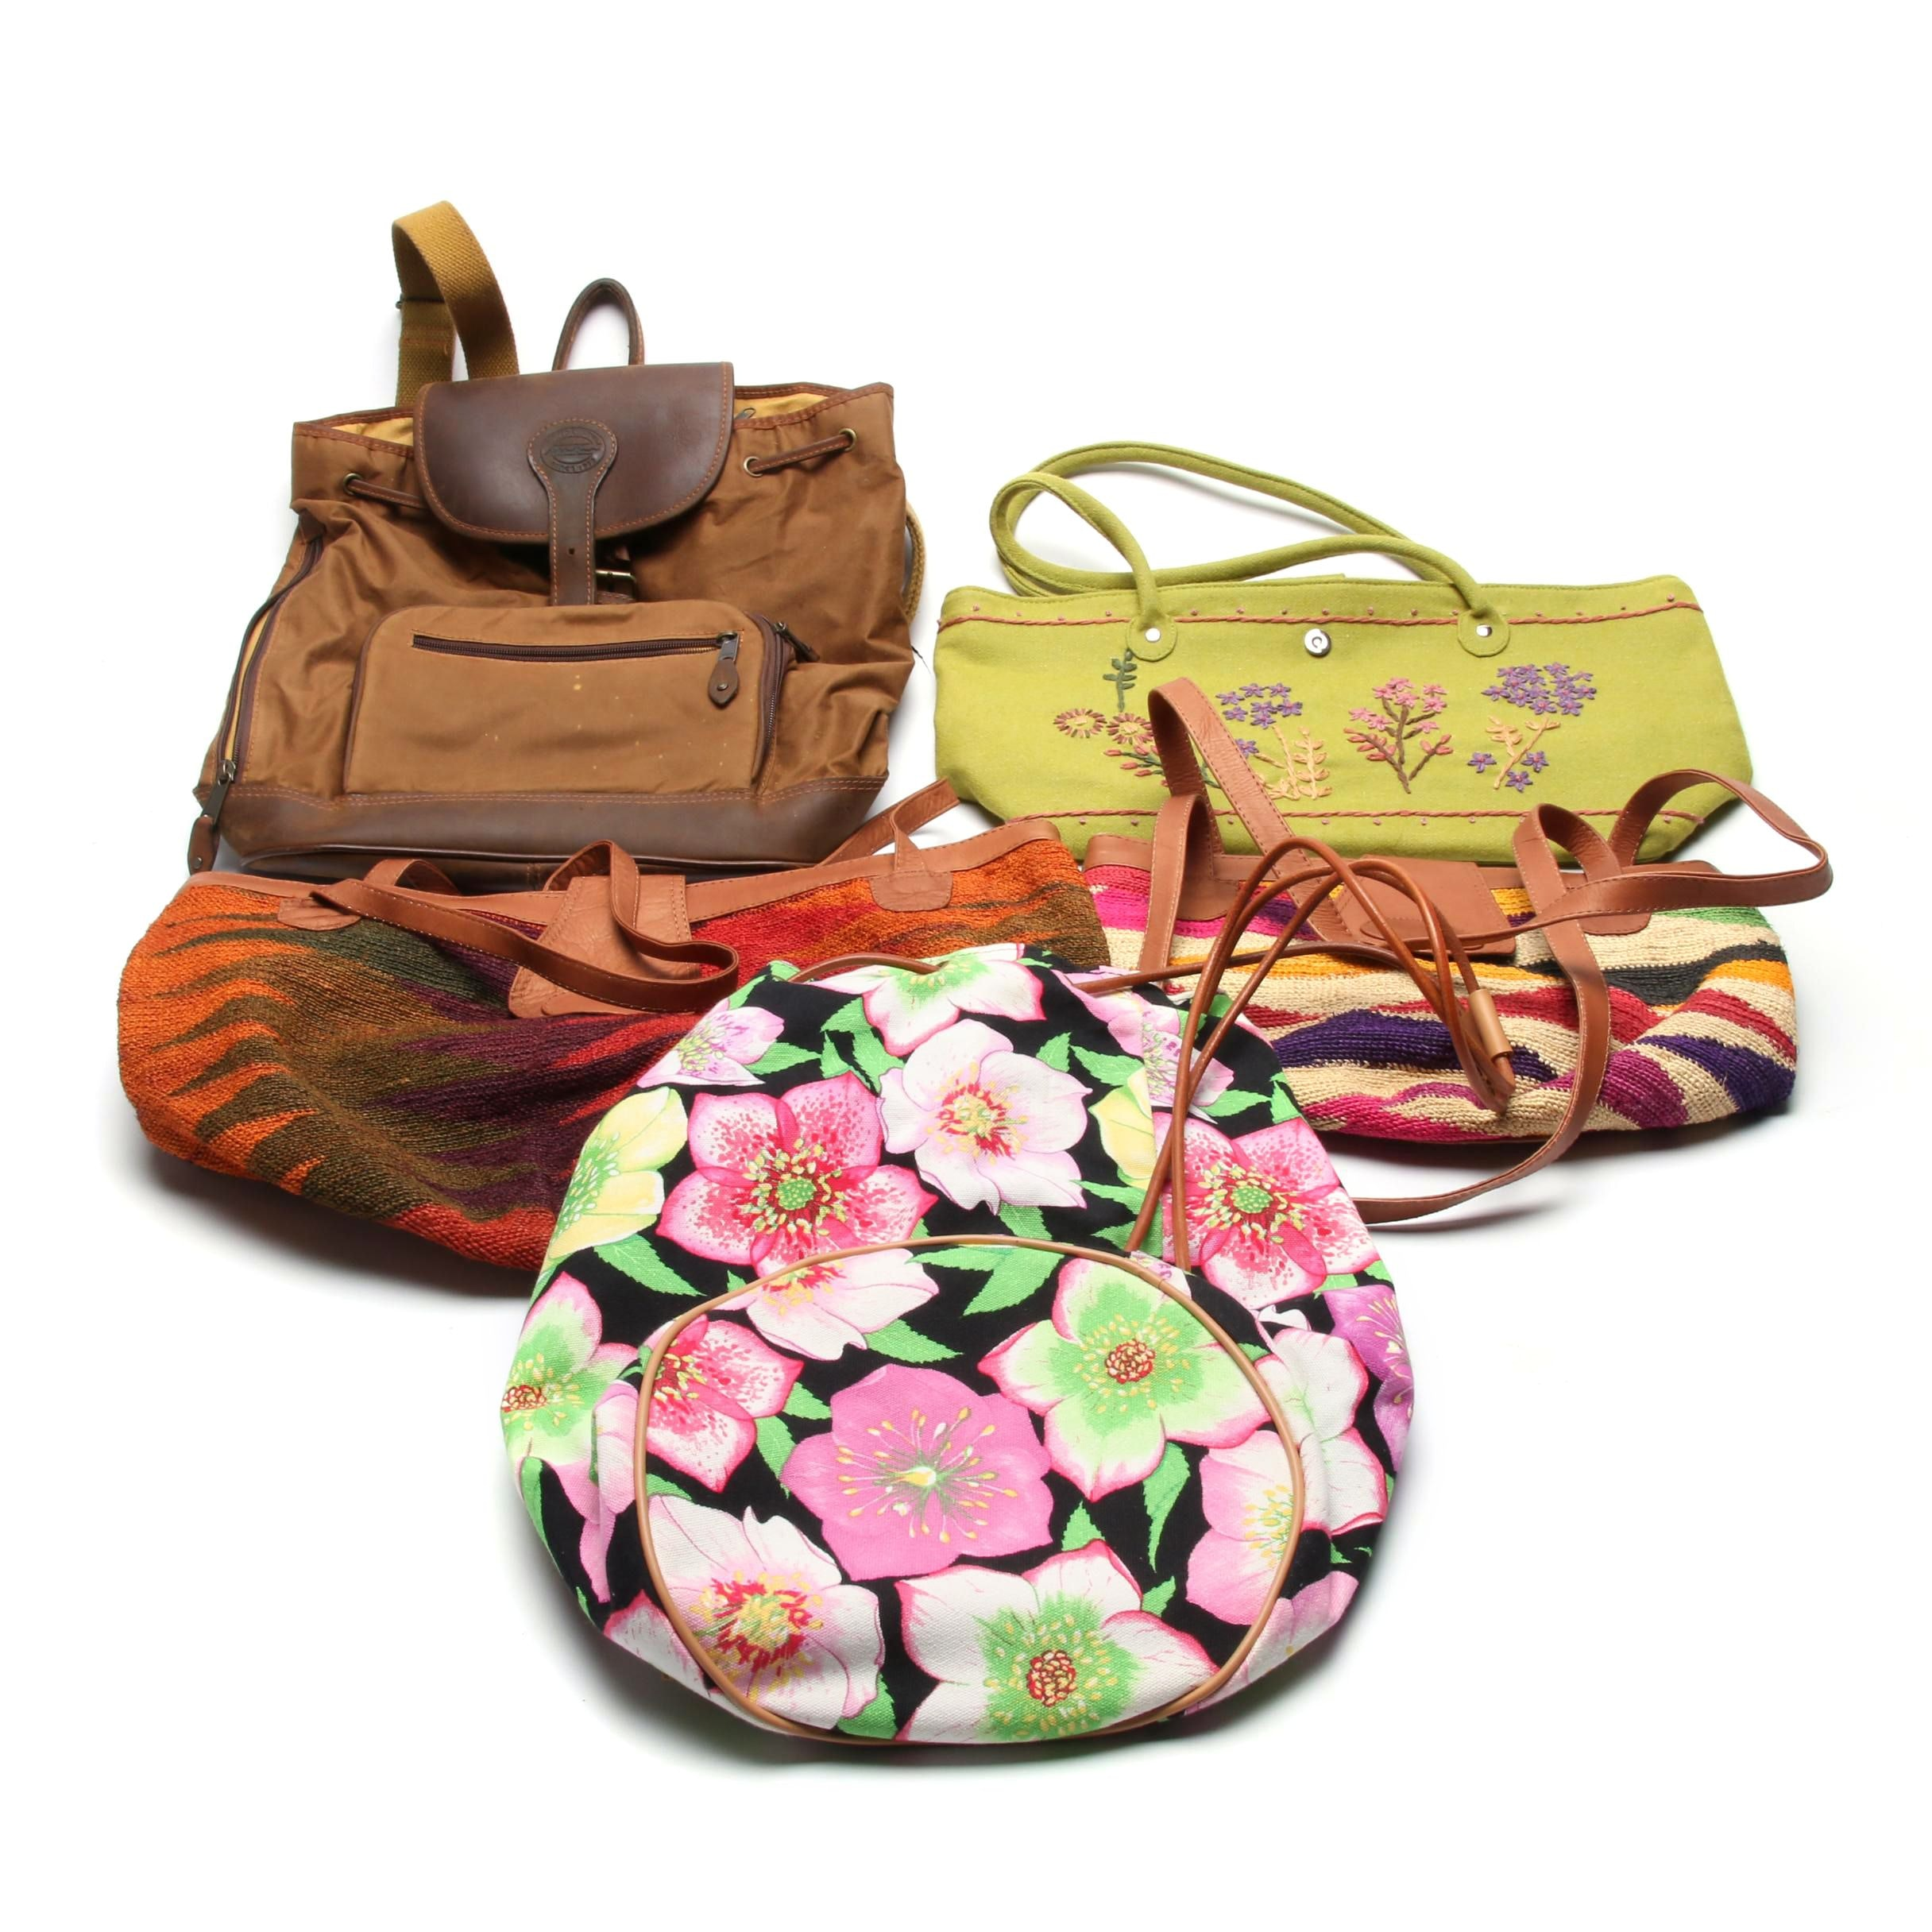 Eddie Bauer Backpack and Manuel Canovas Handbags, Shoulder Bags and More